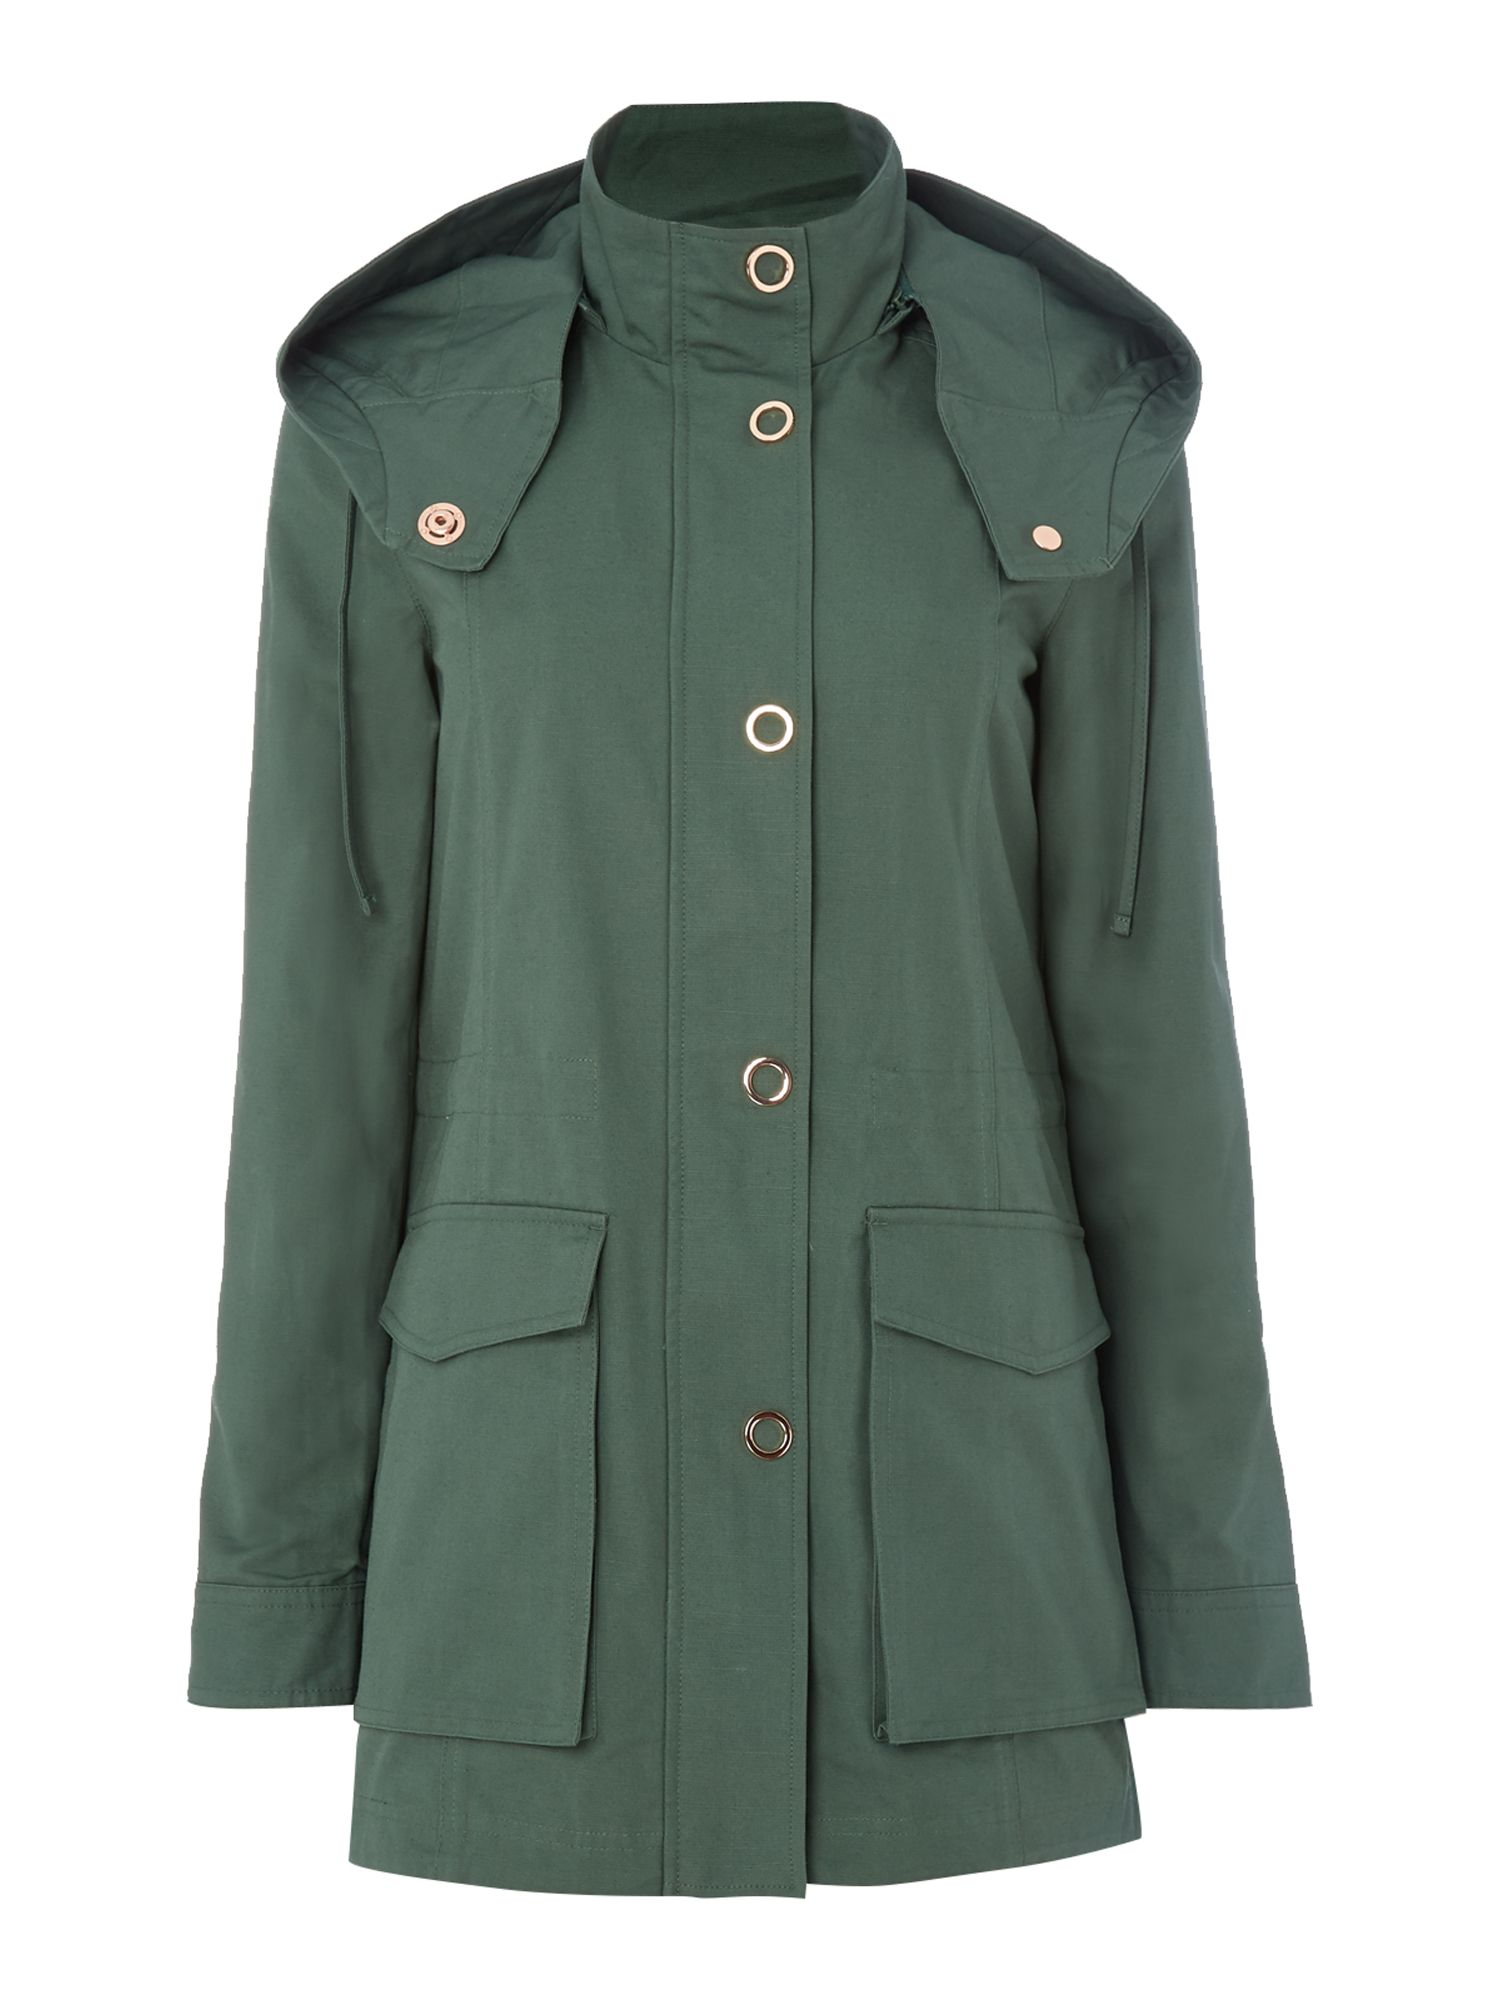 Armani Exchange Caban Coat in Moss, Moss